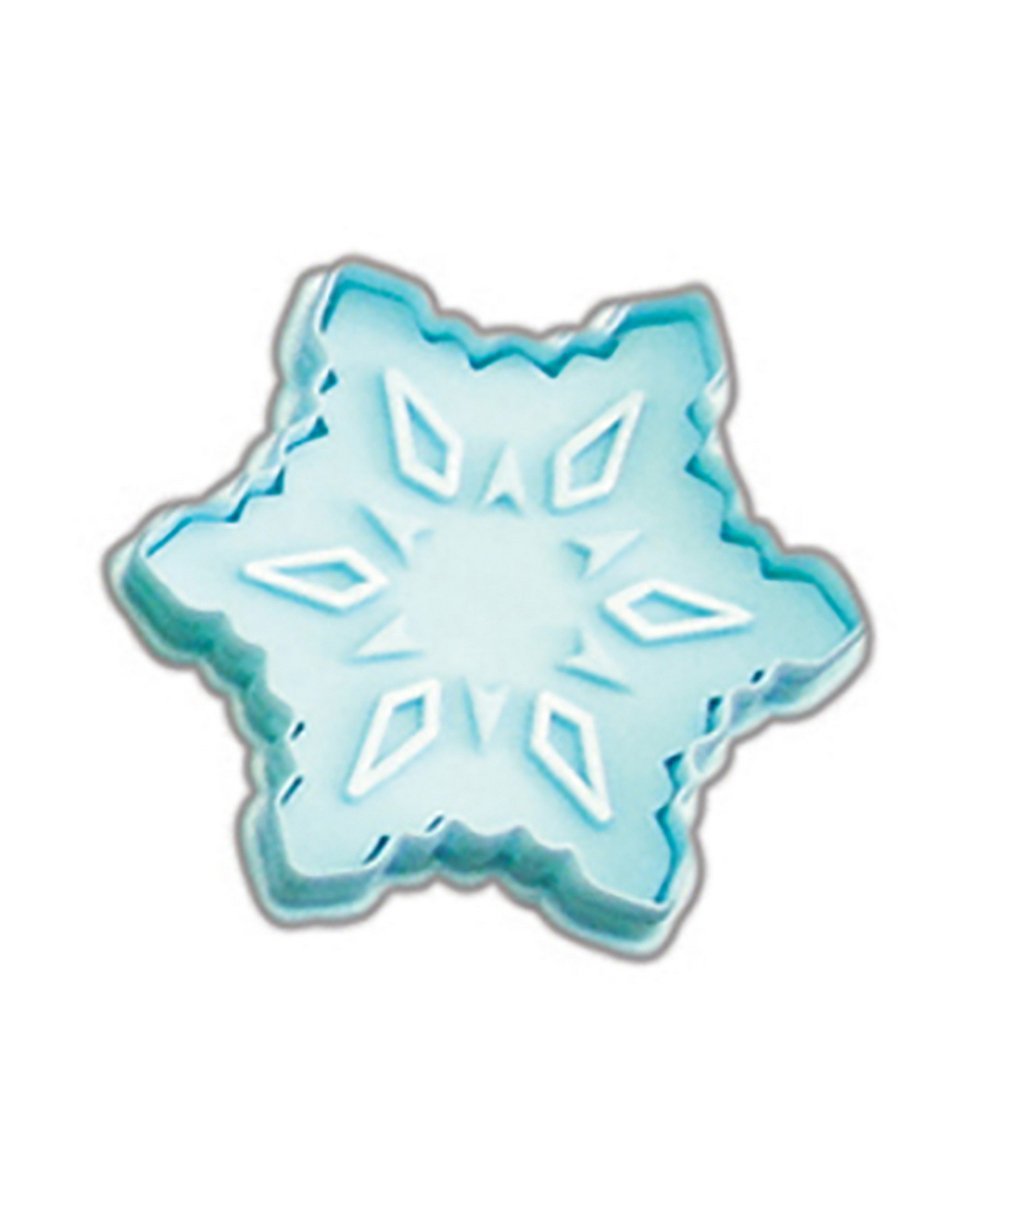 CybrTrayd RM-0403 R&M Snowflake Cookie Stamper 2.75' One size Blue